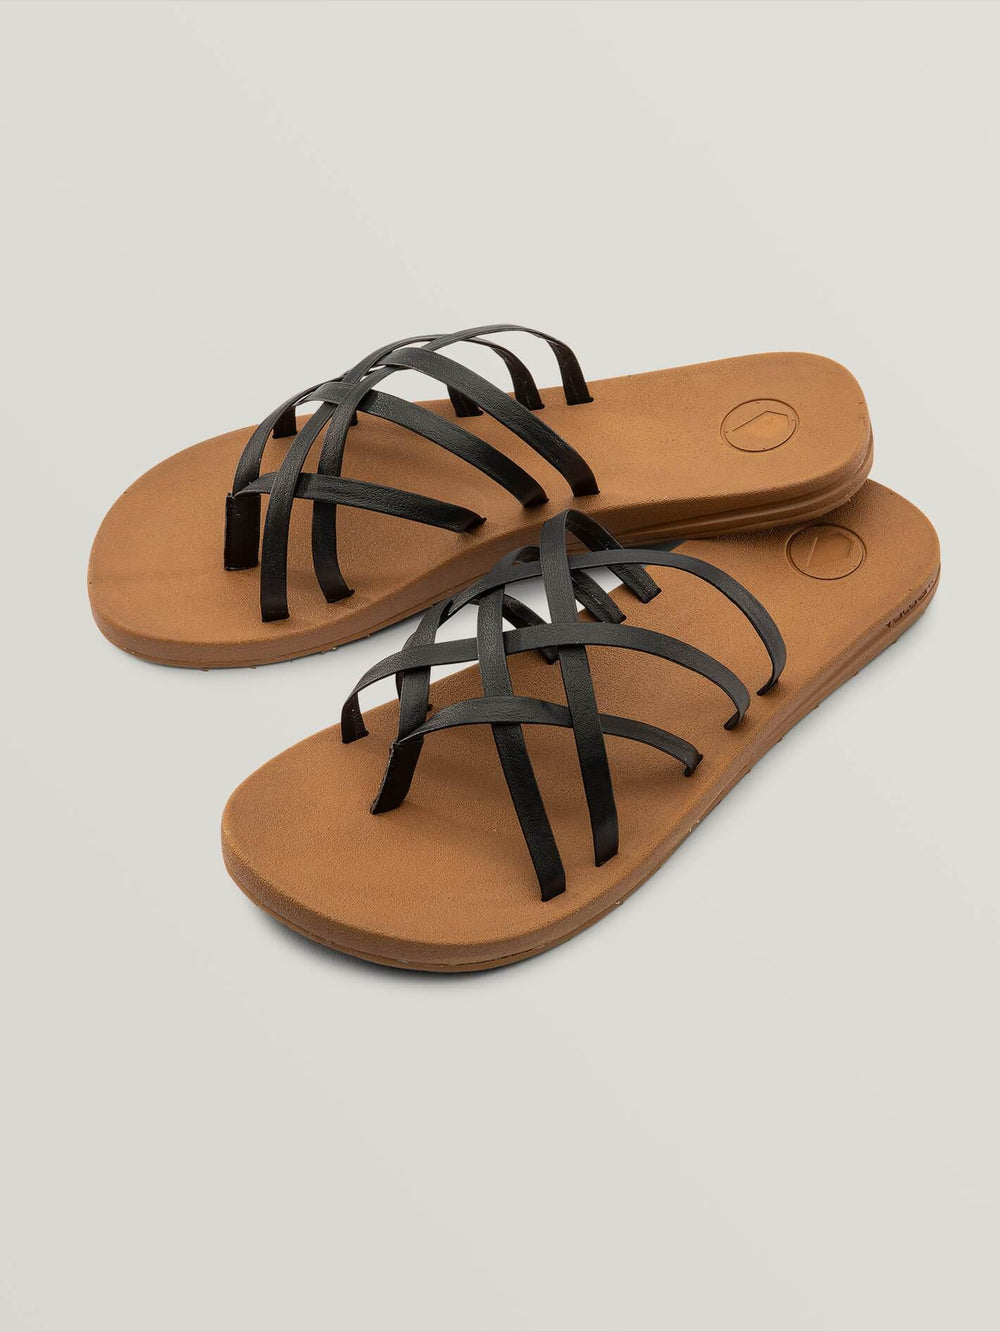 E-CLINER MULTI STRAP SANDALS - BLACK